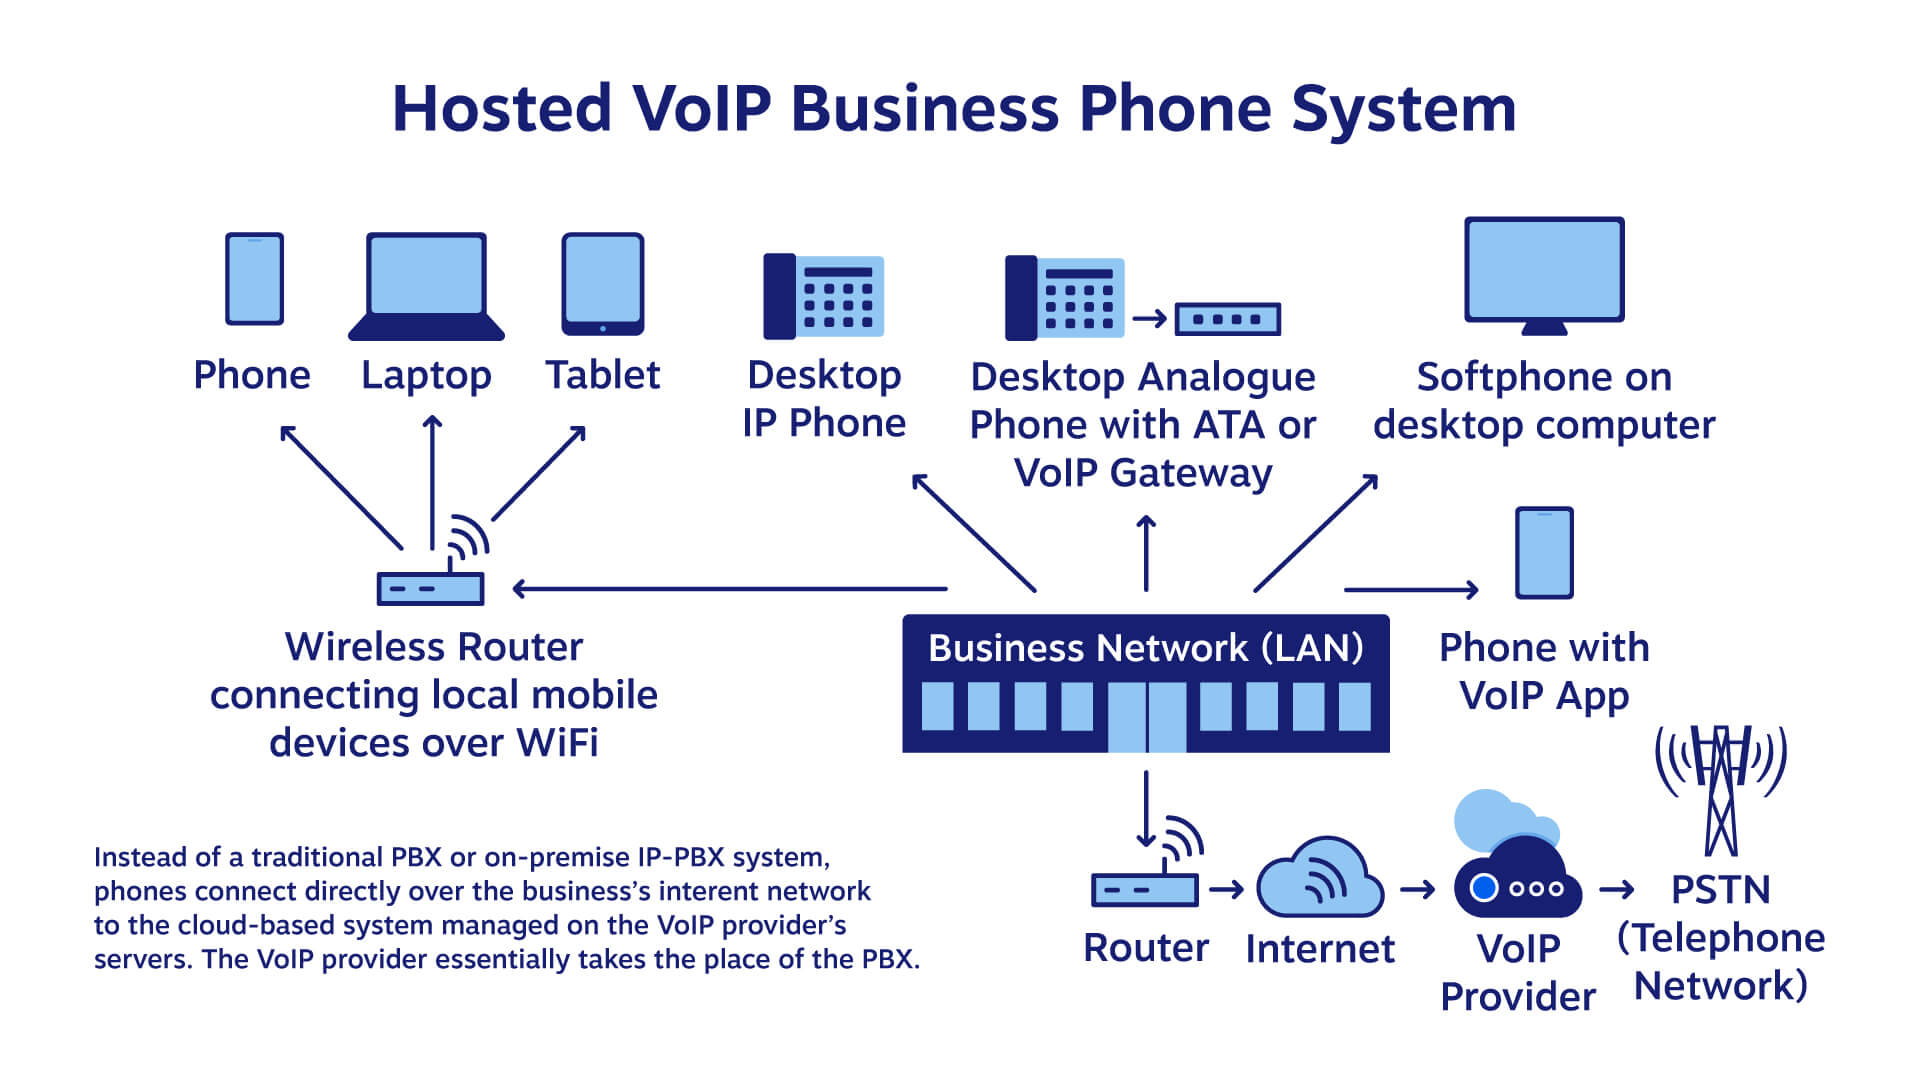 Diagram showing a VoIP business phone system